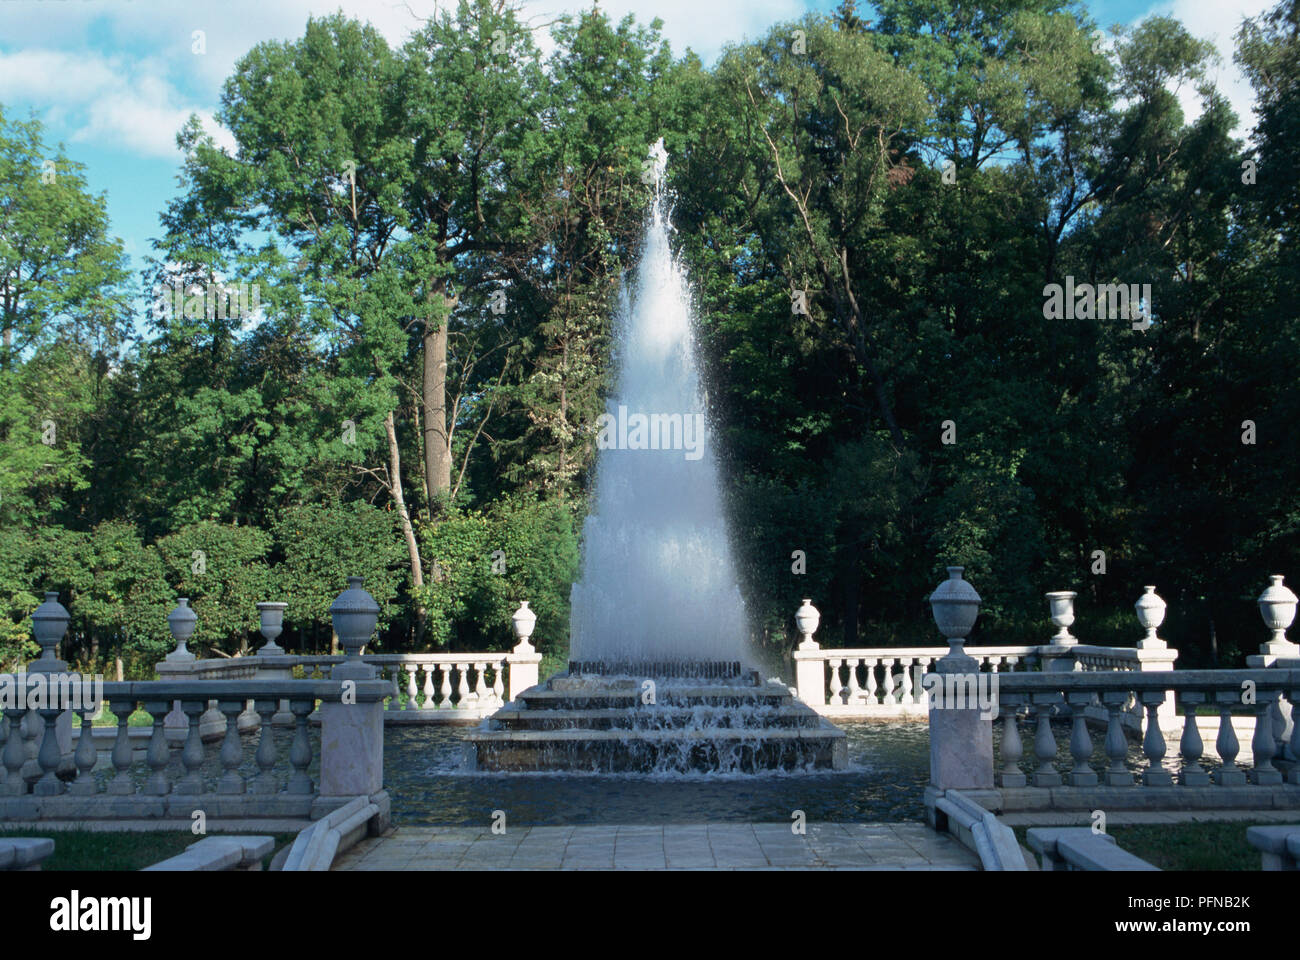 Russia, Northwest, the Pyramid Fountain at Peterhof 1720's